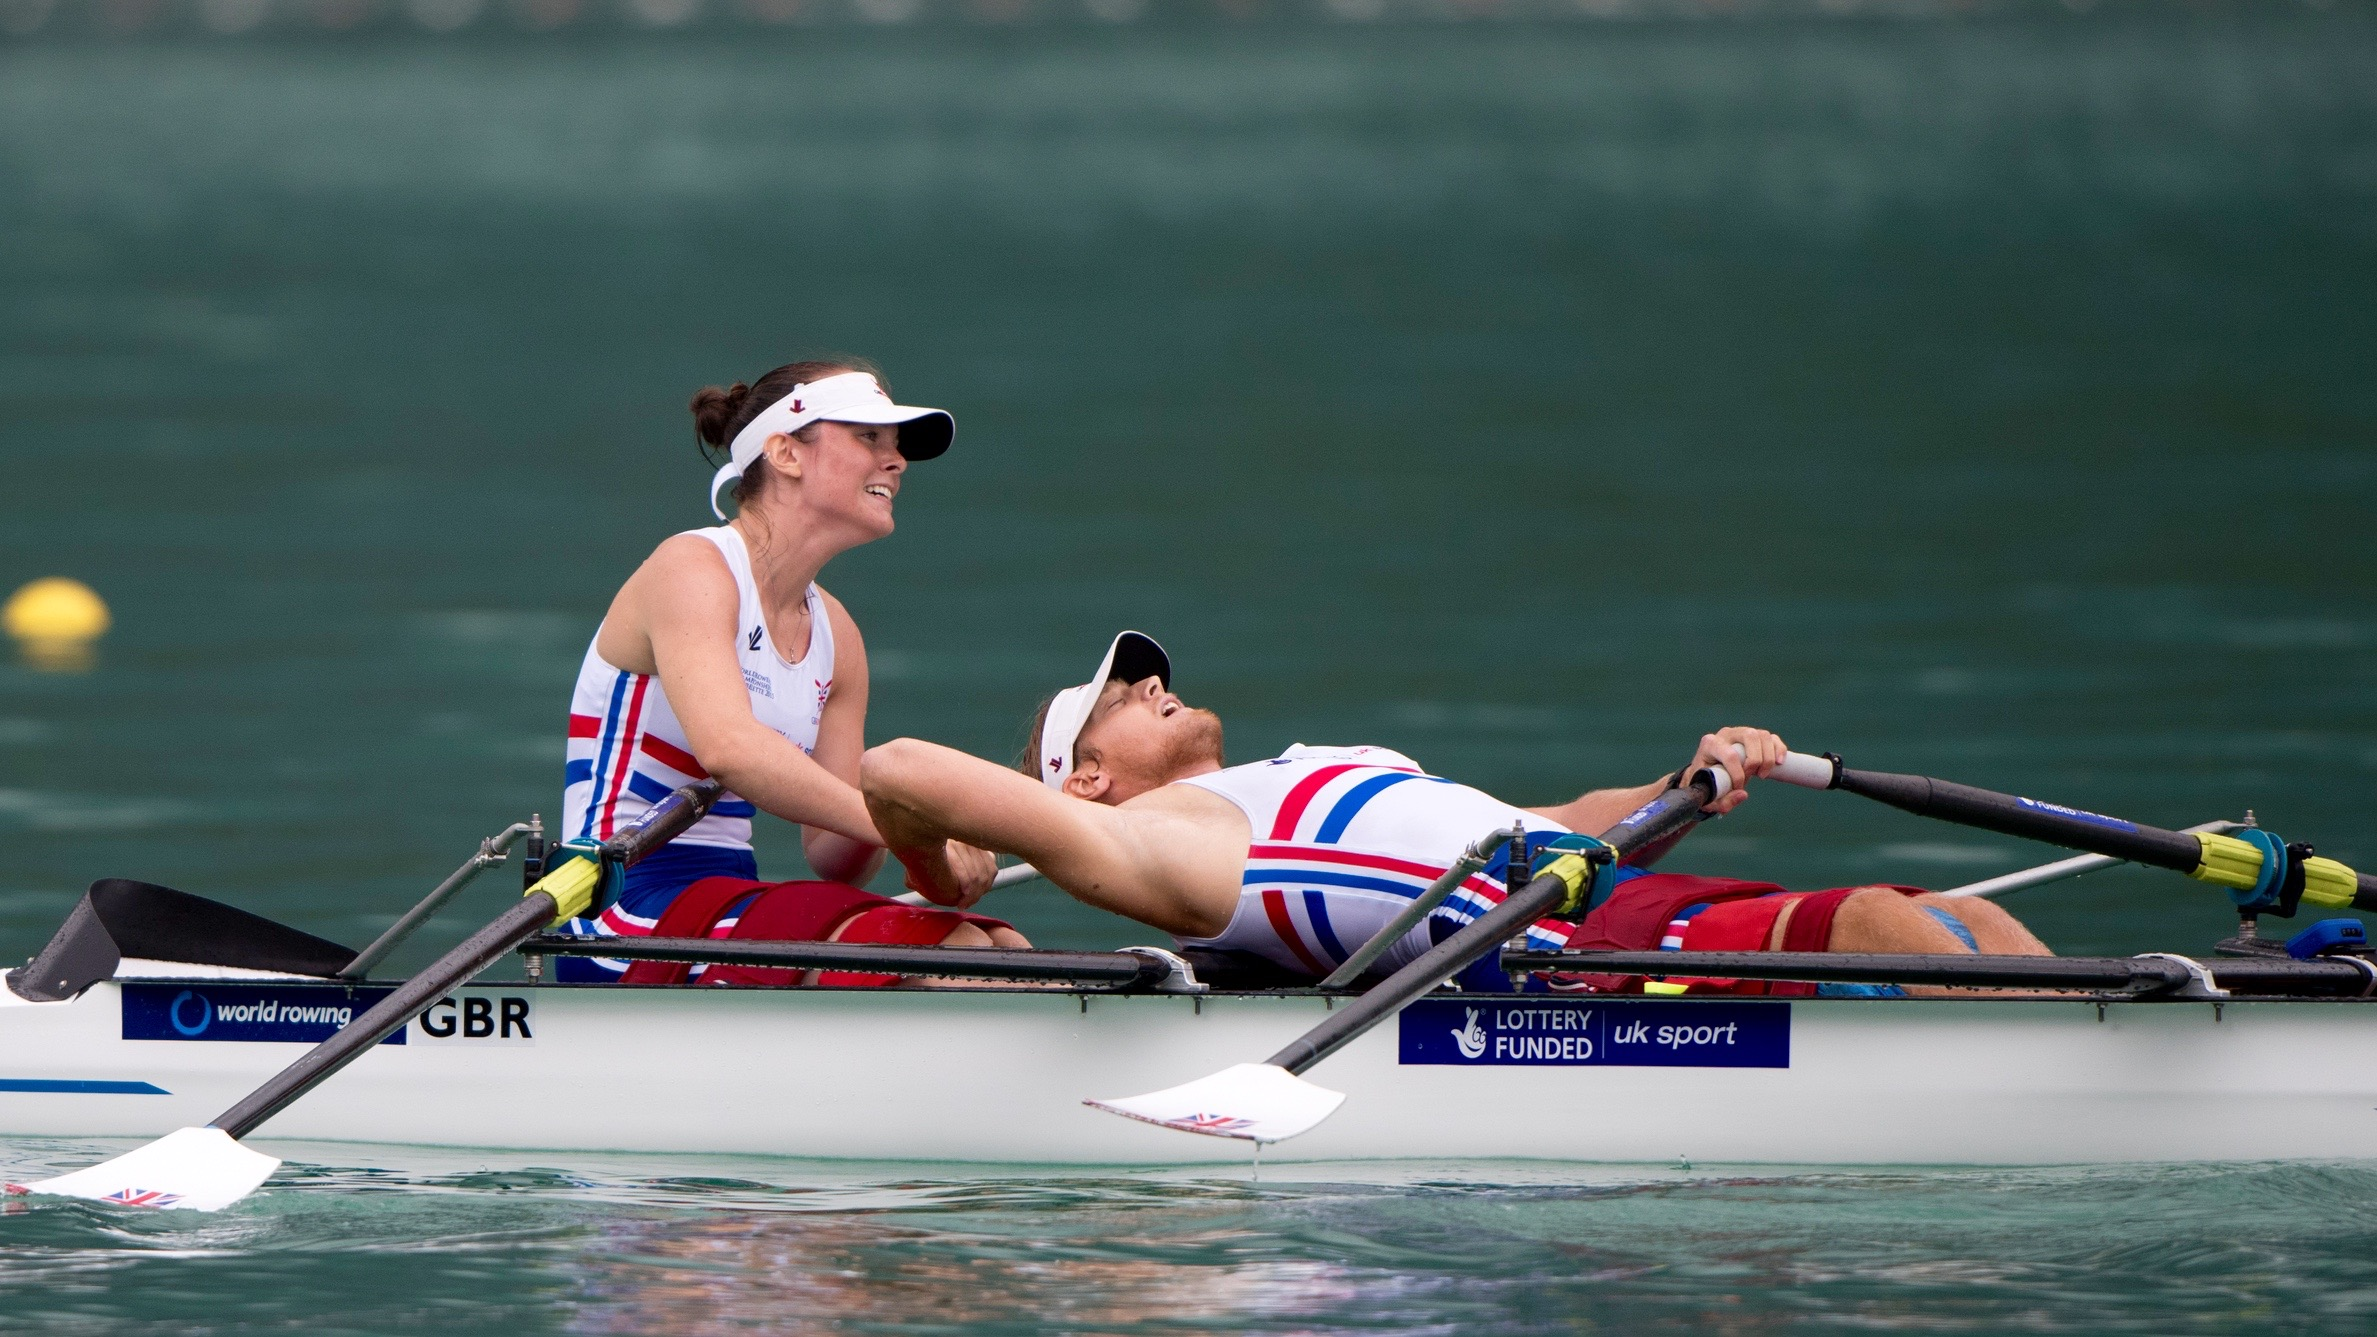 Lauren Rowles and Laurence Whiteley celebrate after winning silver at the 2015 World Championships in Aiguebelette